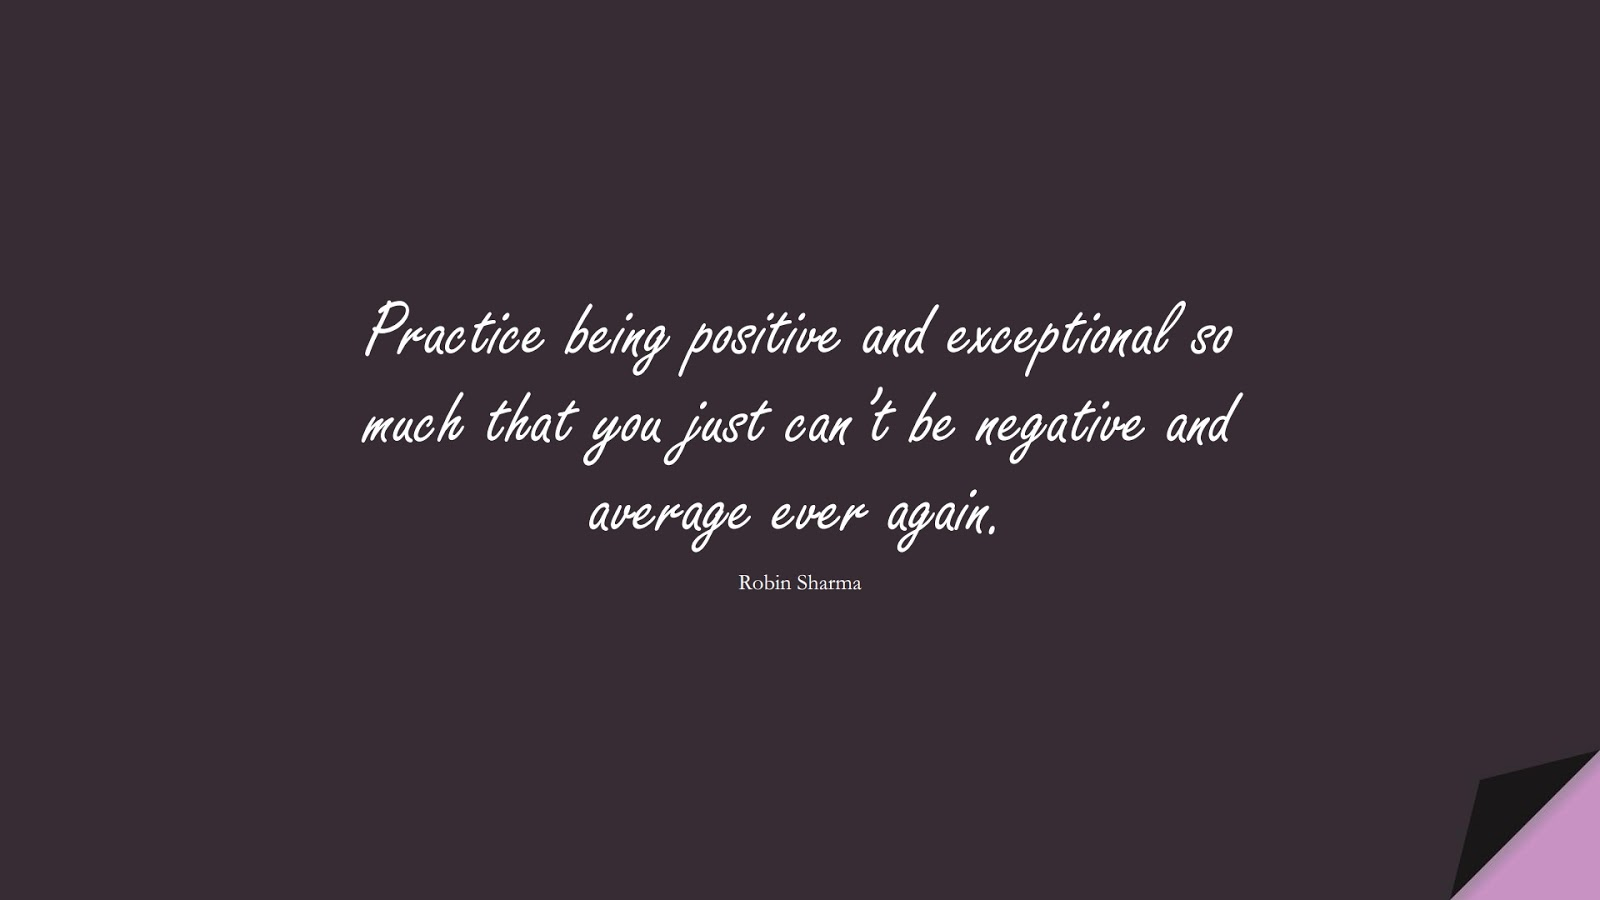 Practice being positive and exceptional so much that you just can't be negative and average ever again. (Robin Sharma);  #PositiveQuotes